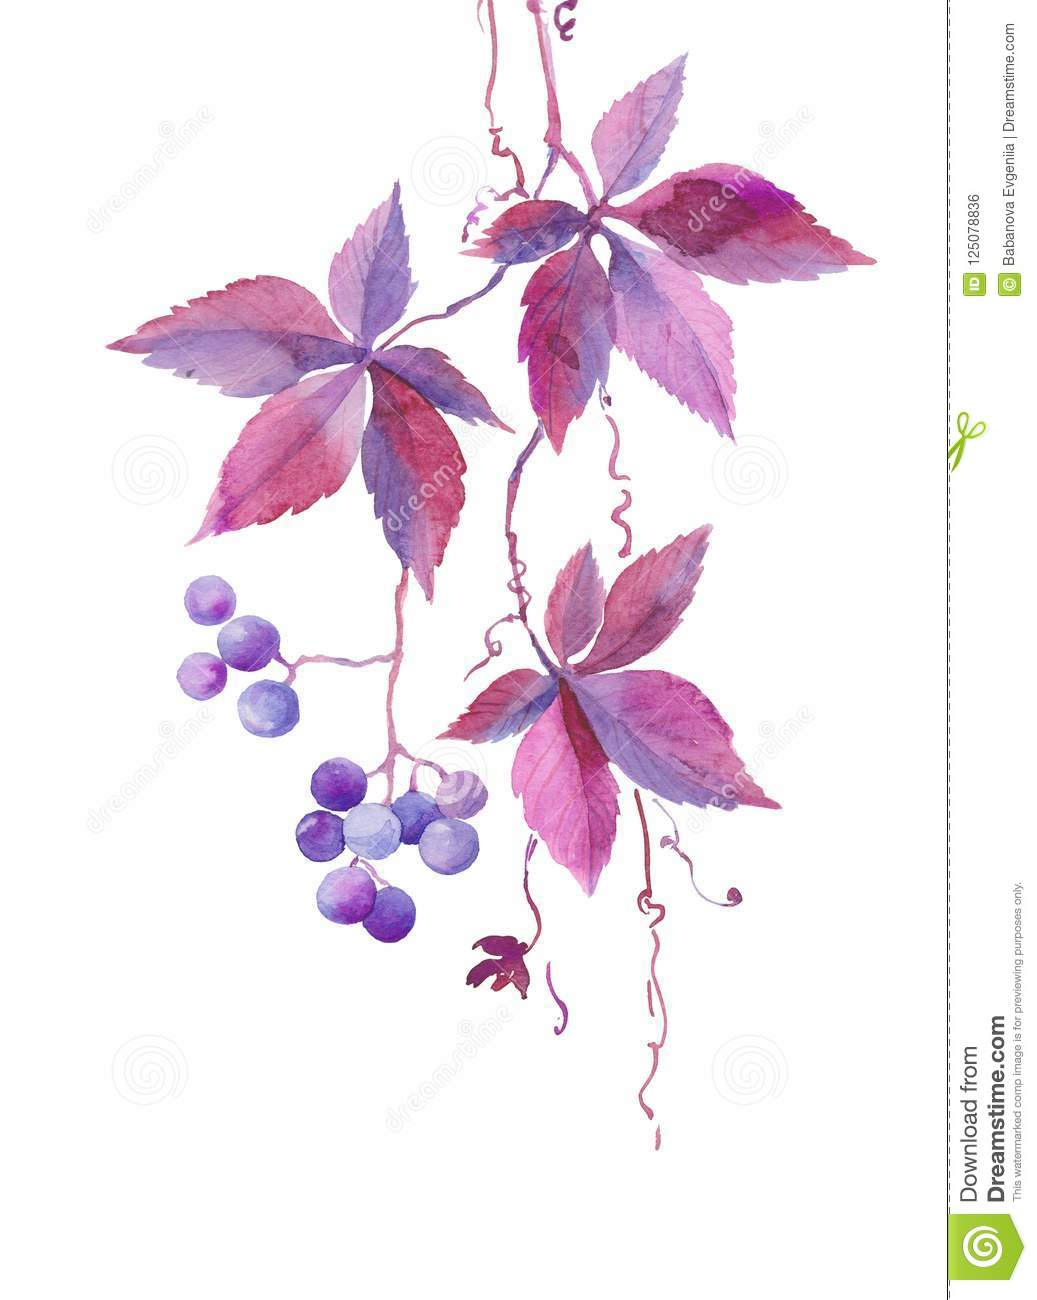 Watercolor illustration, a branch of wild girlish vine, blue violet berries, autumn plant, sketch